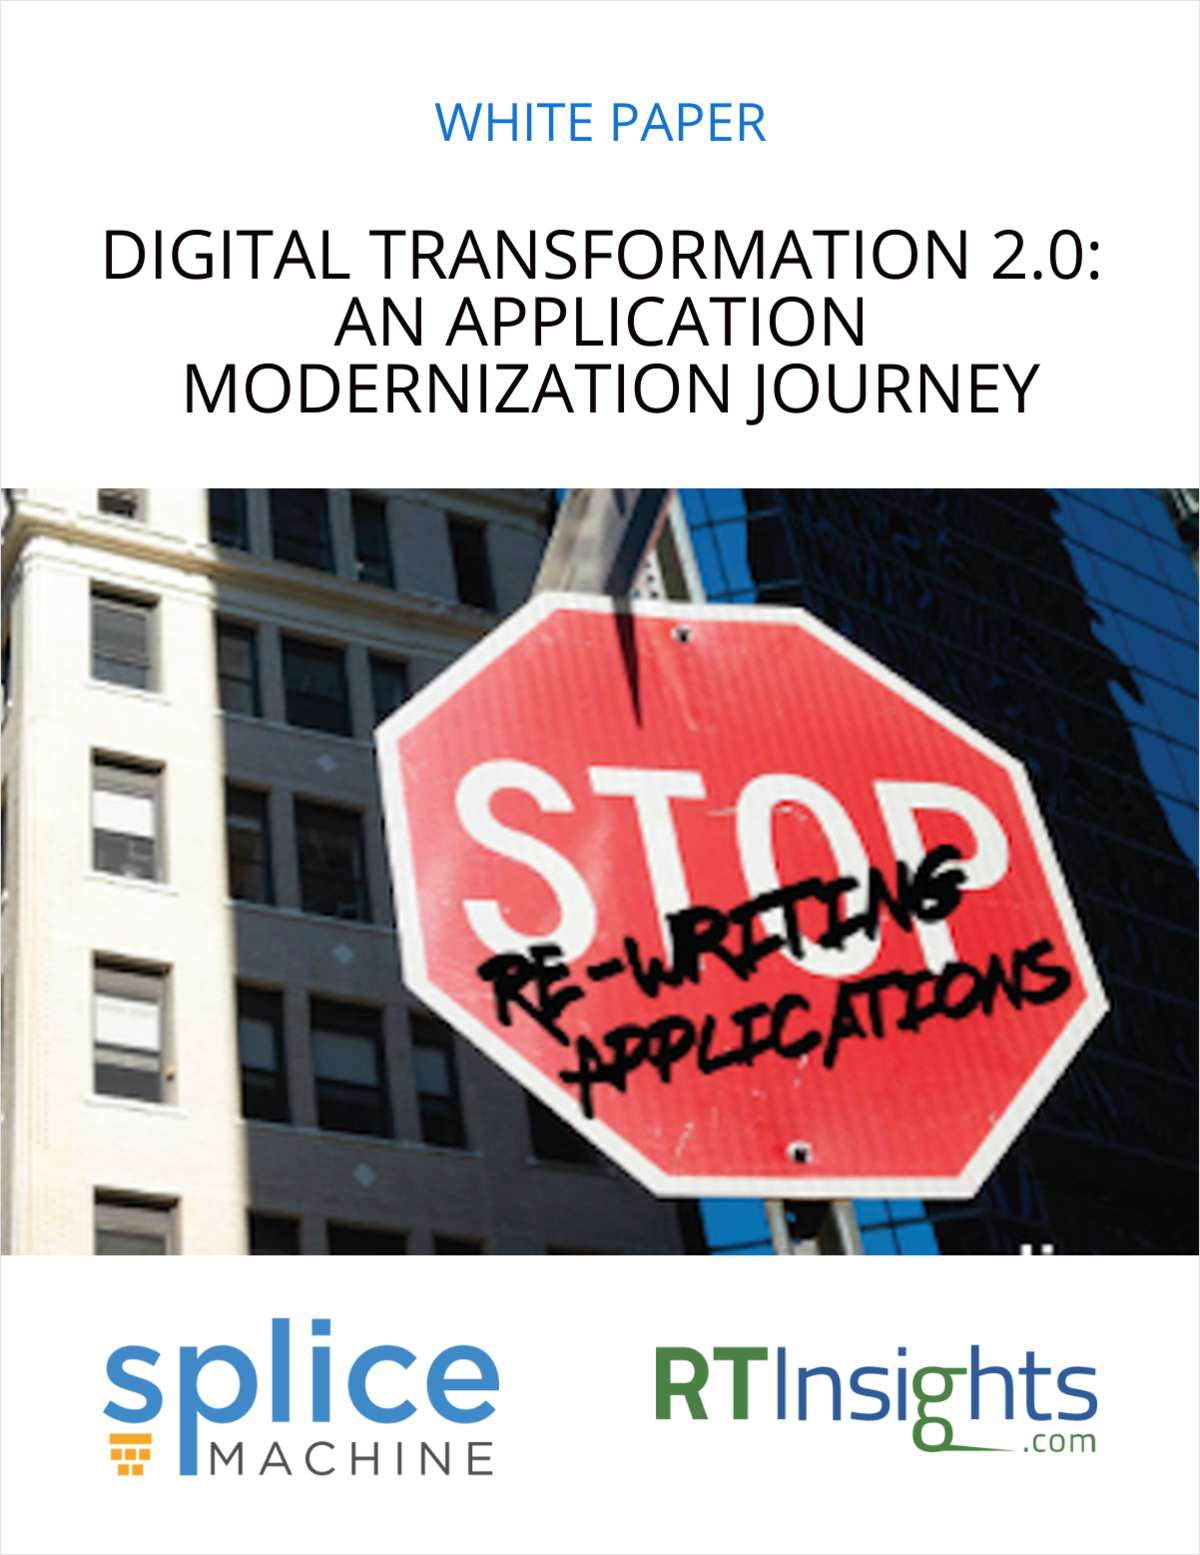 Digital Transformation 2.0: An Application Modernization Journey